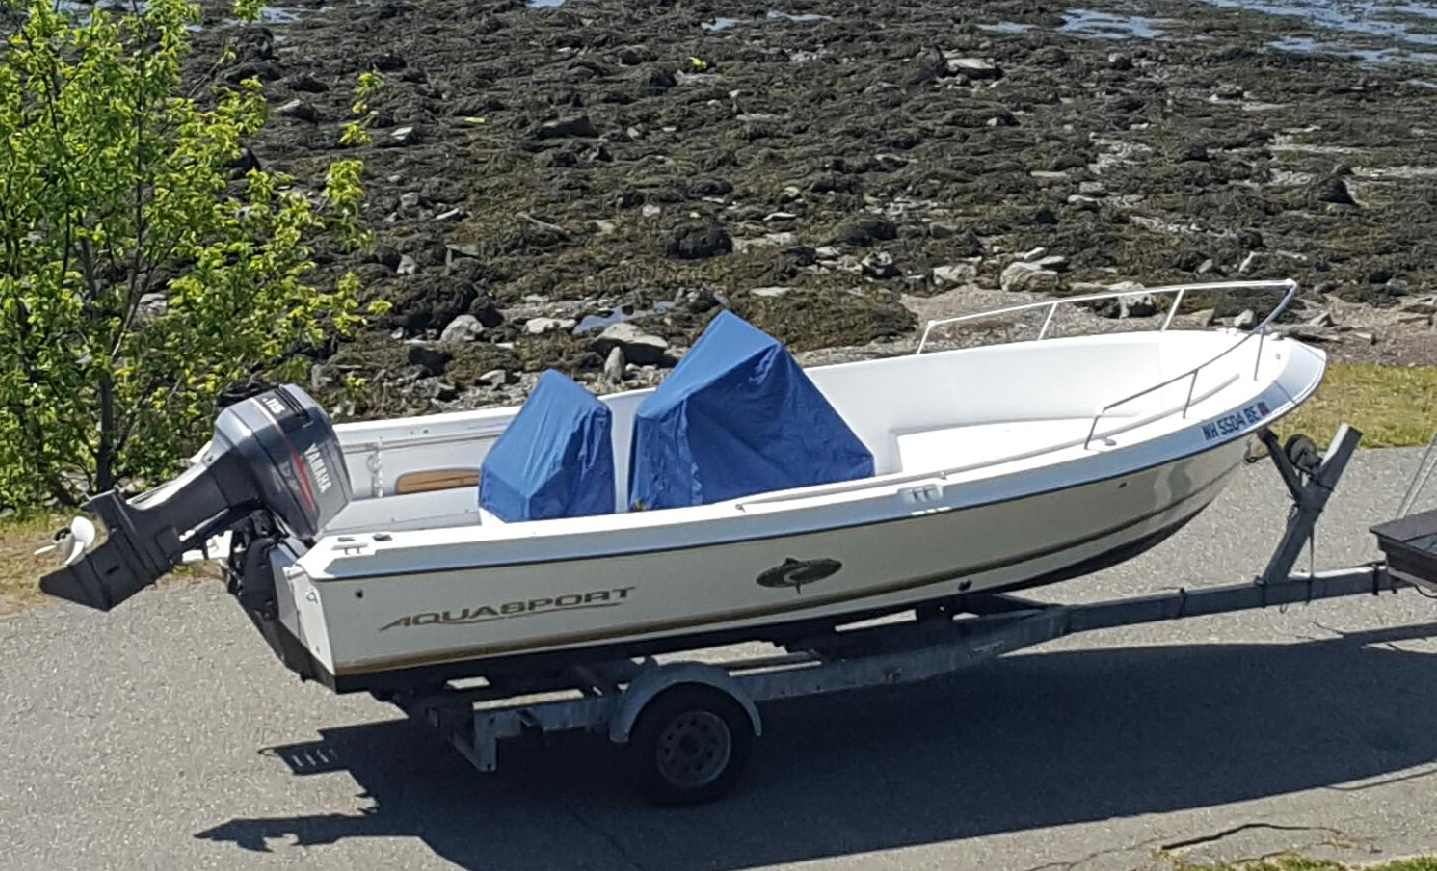 Our Aquasport 200 is the perfect size to get us to the fish both safely and efficiently.